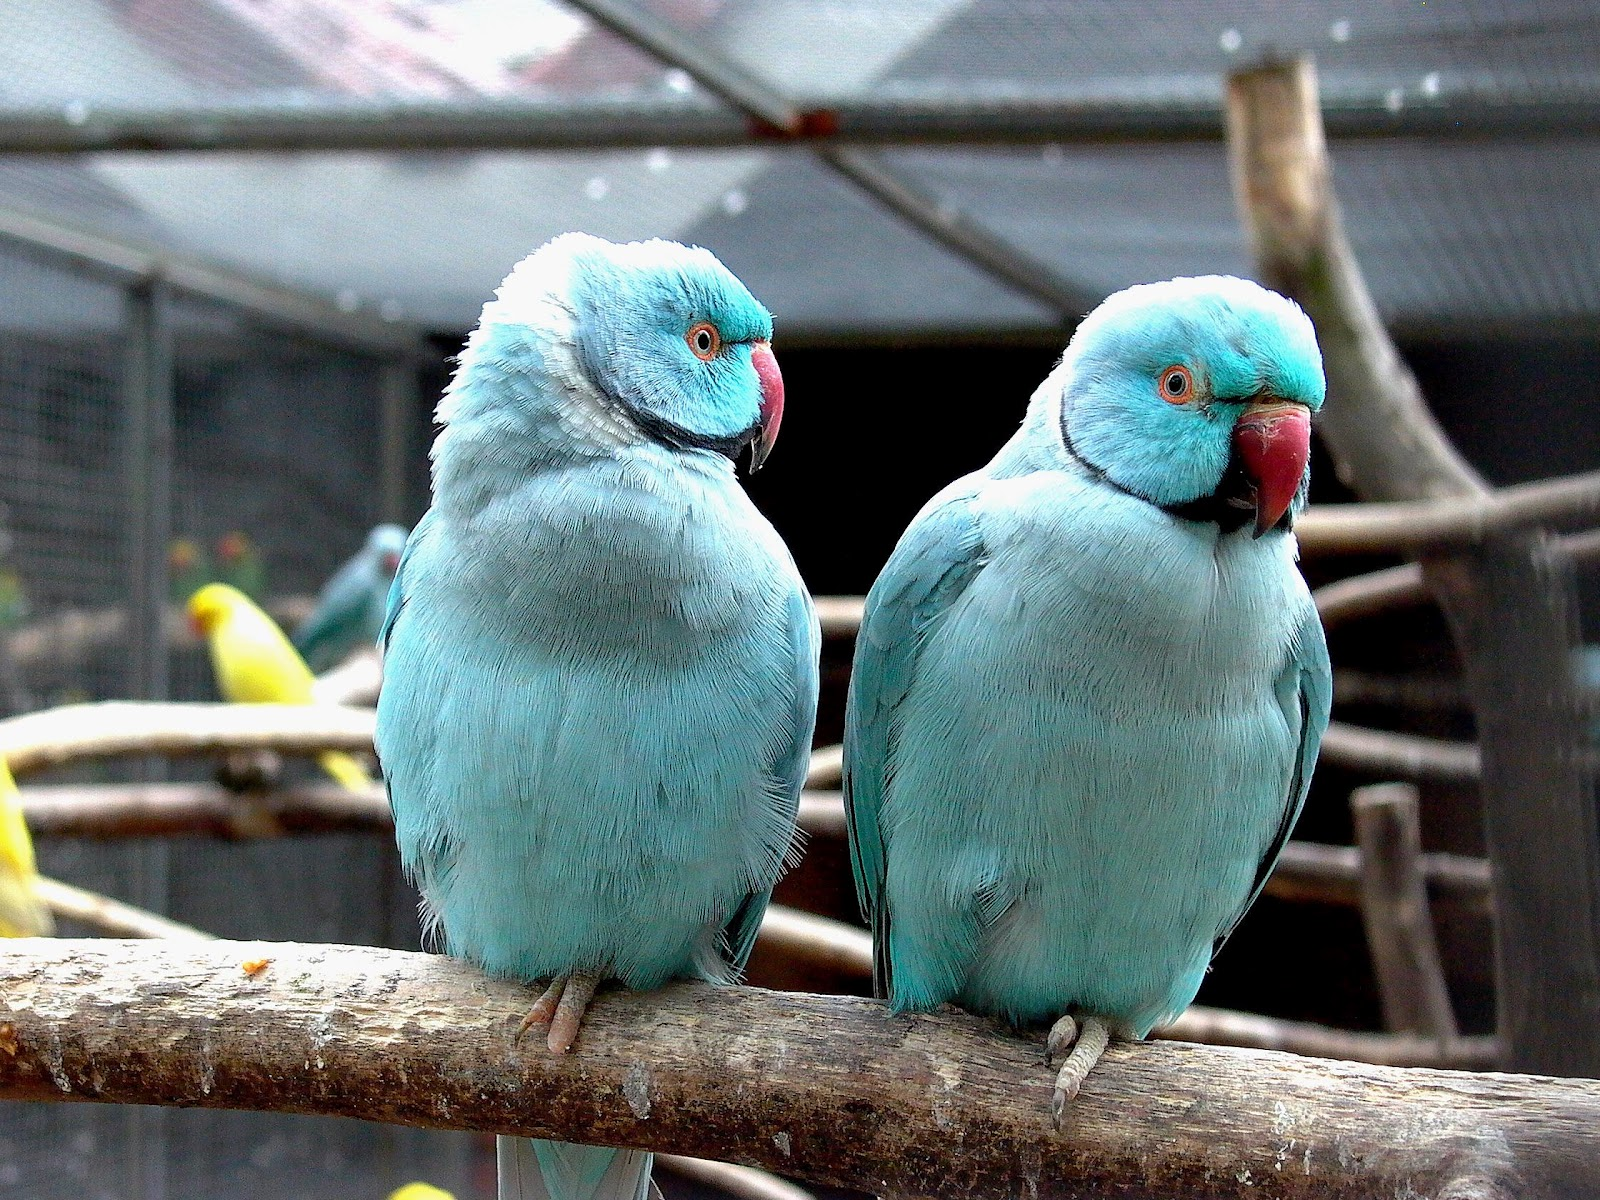 All Wallpapers: Blue Indian Parrots